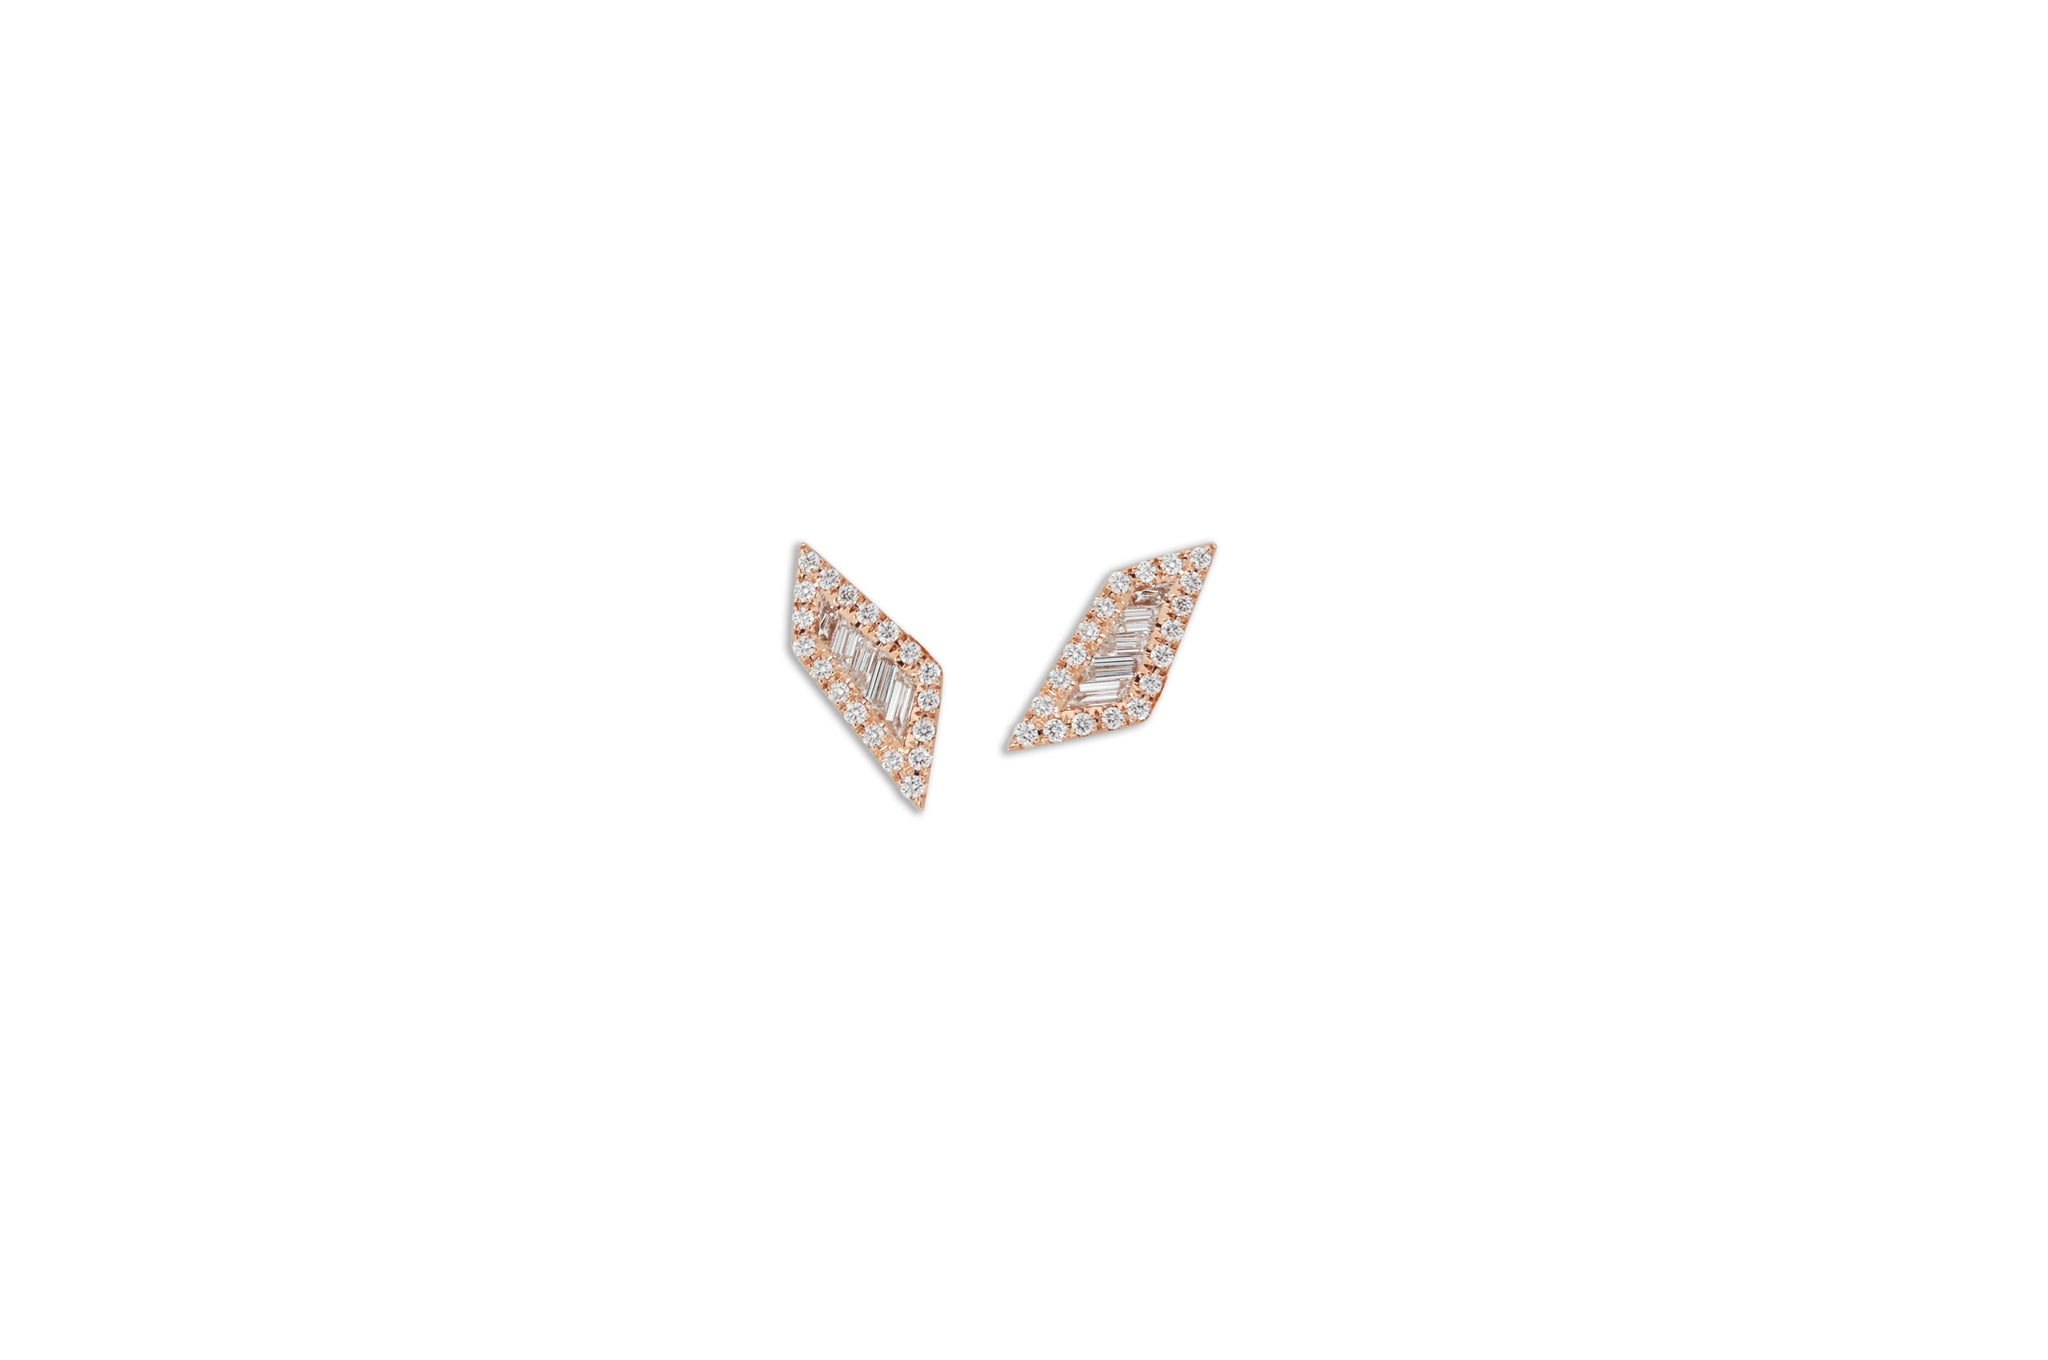 Origami Palm Leaf Diamond Earrings (Small)